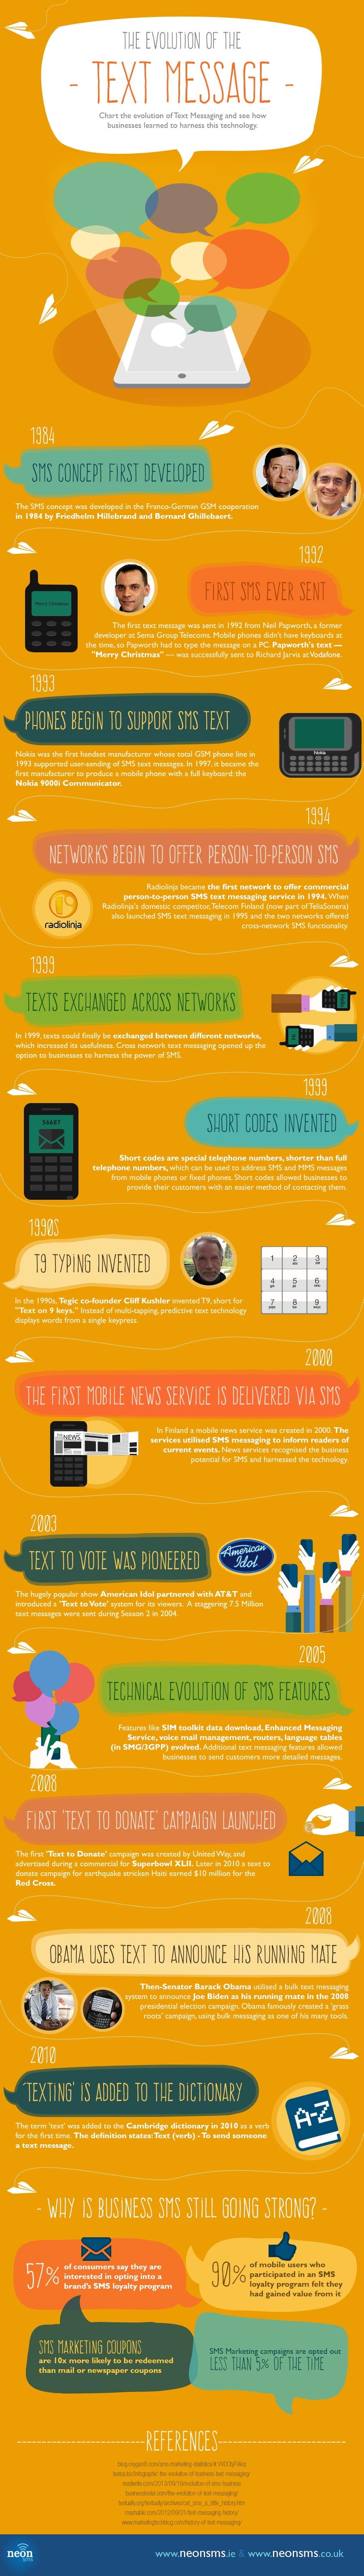 The-Evolution-of-the-Text-Message-Infographic.jpg